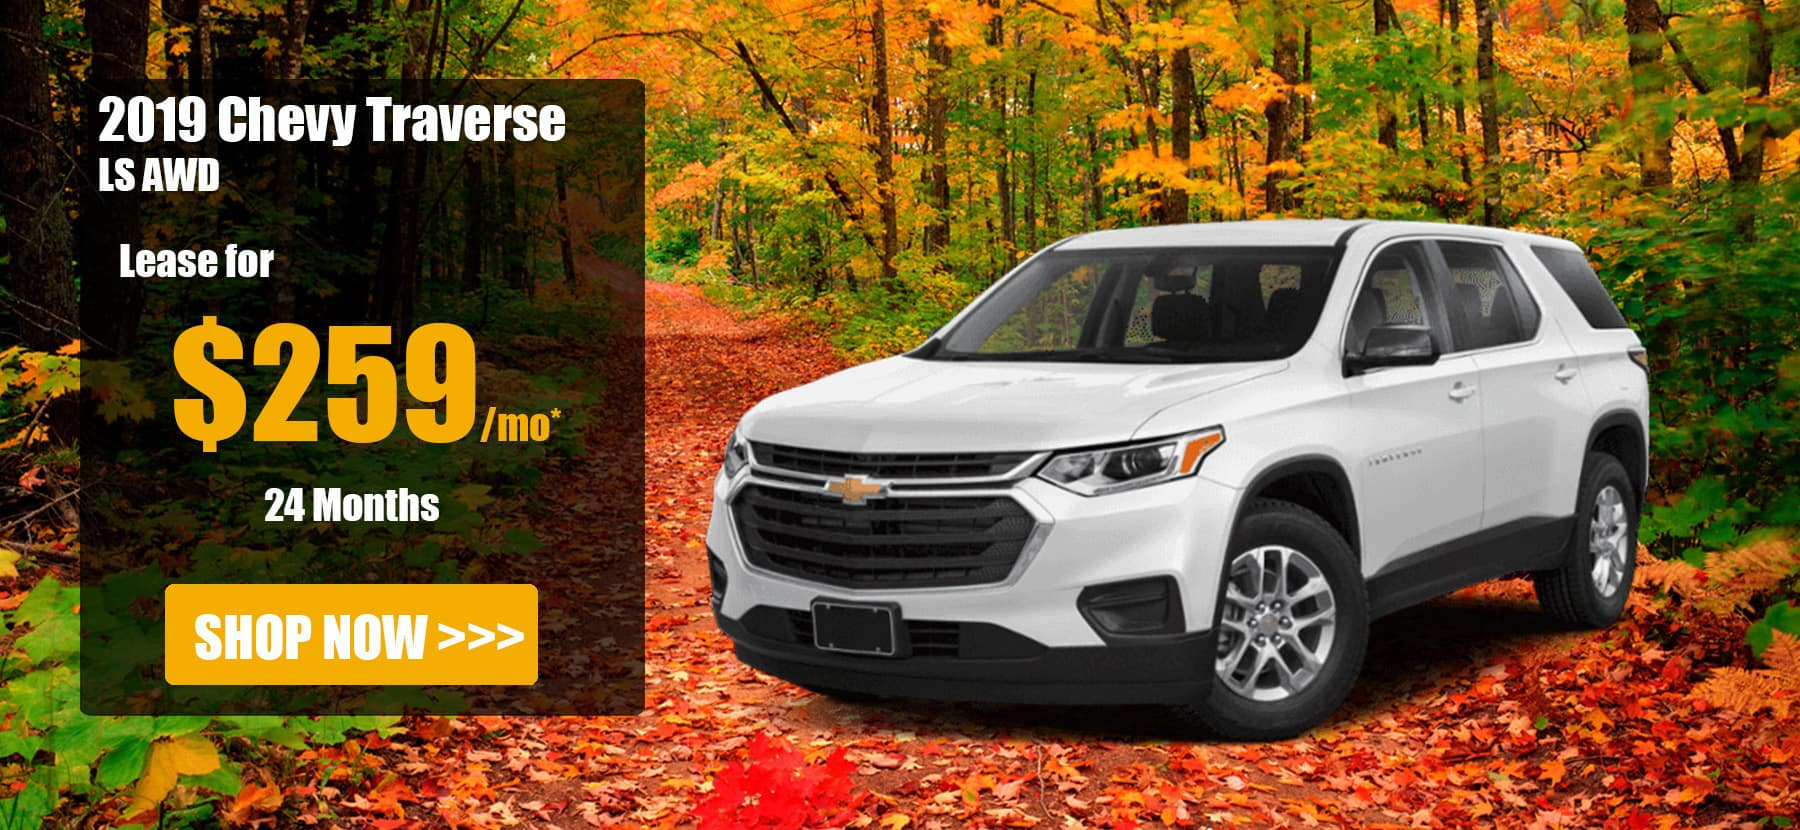 2015 Chevy Traverse Oil Filter Location